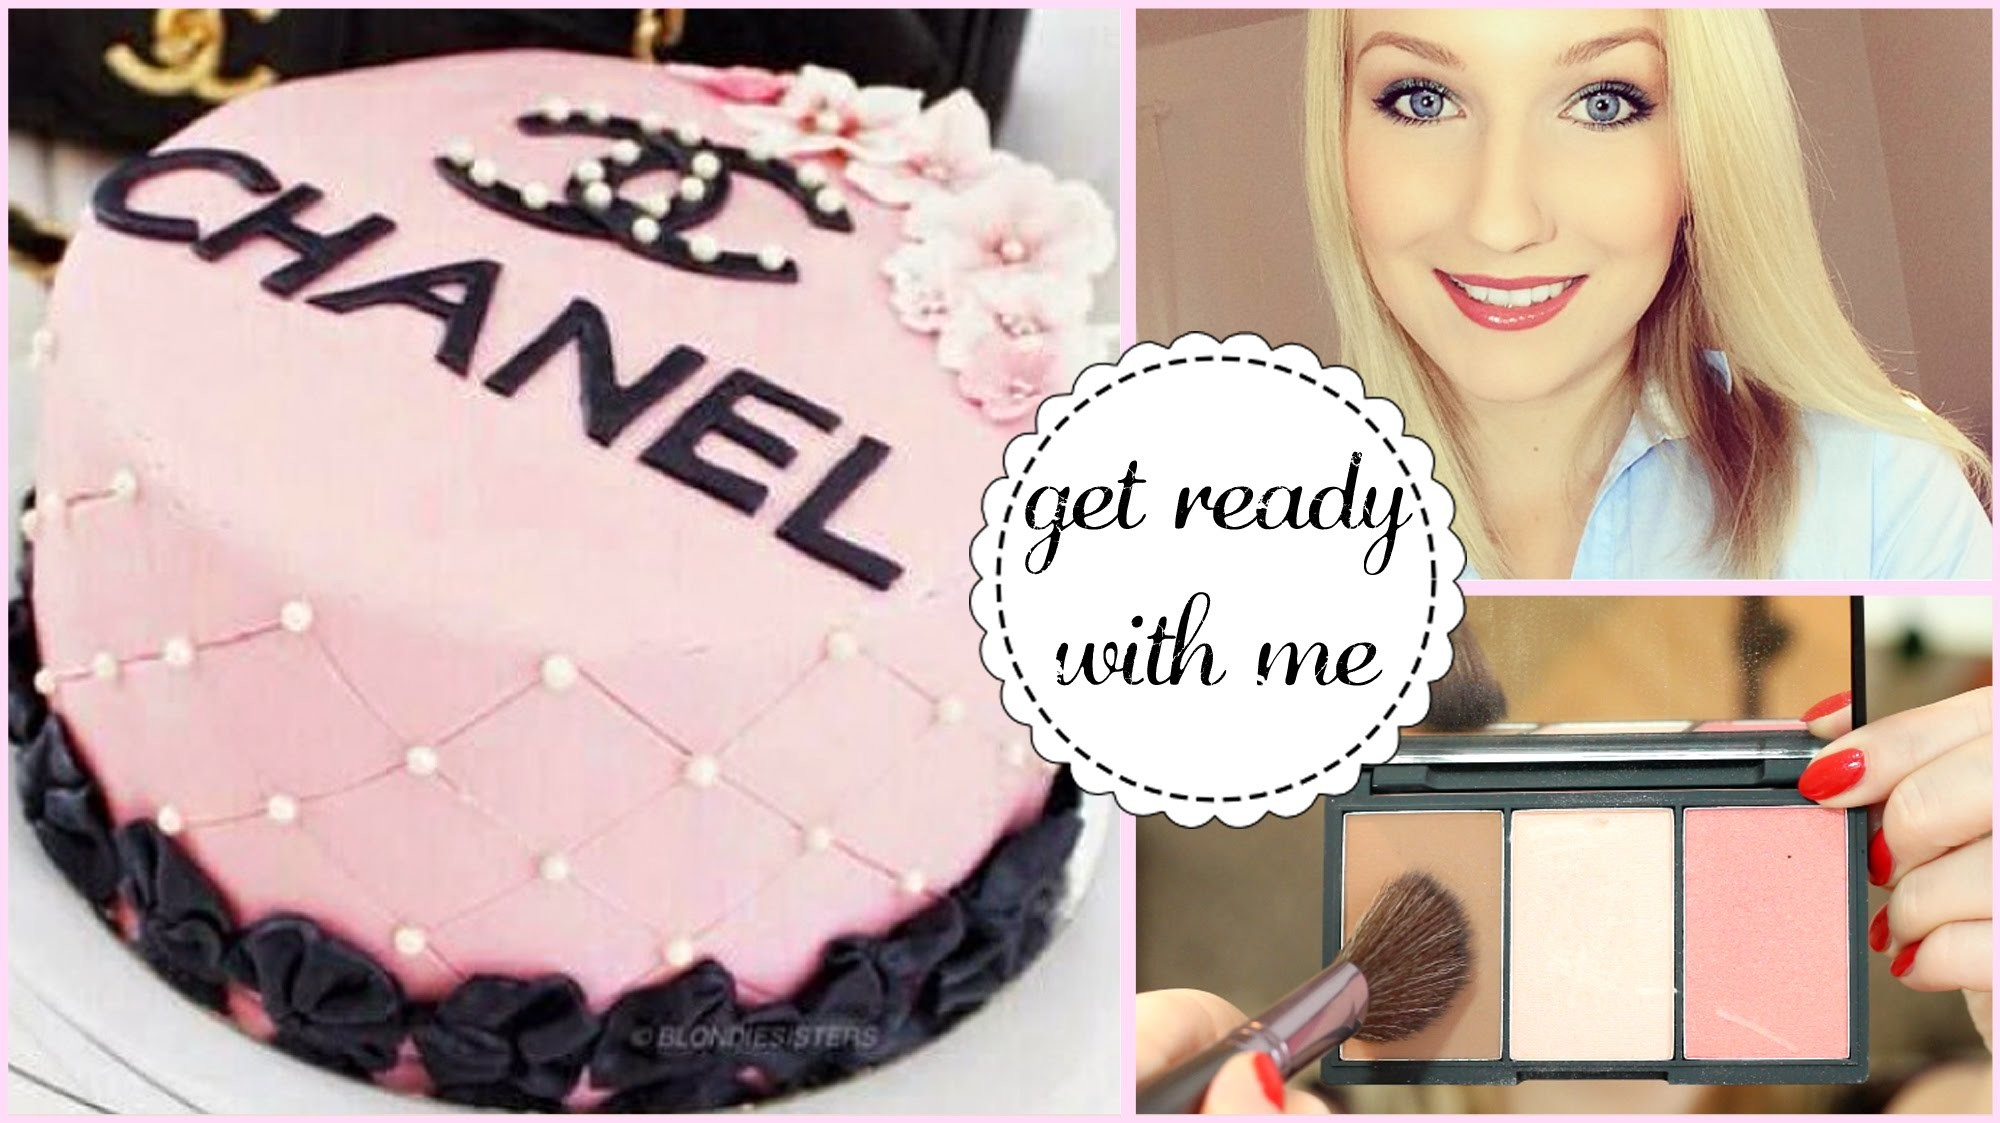 GET READY for a BIRTHDAY! Chanel Kuchen, Makeup & Outfit